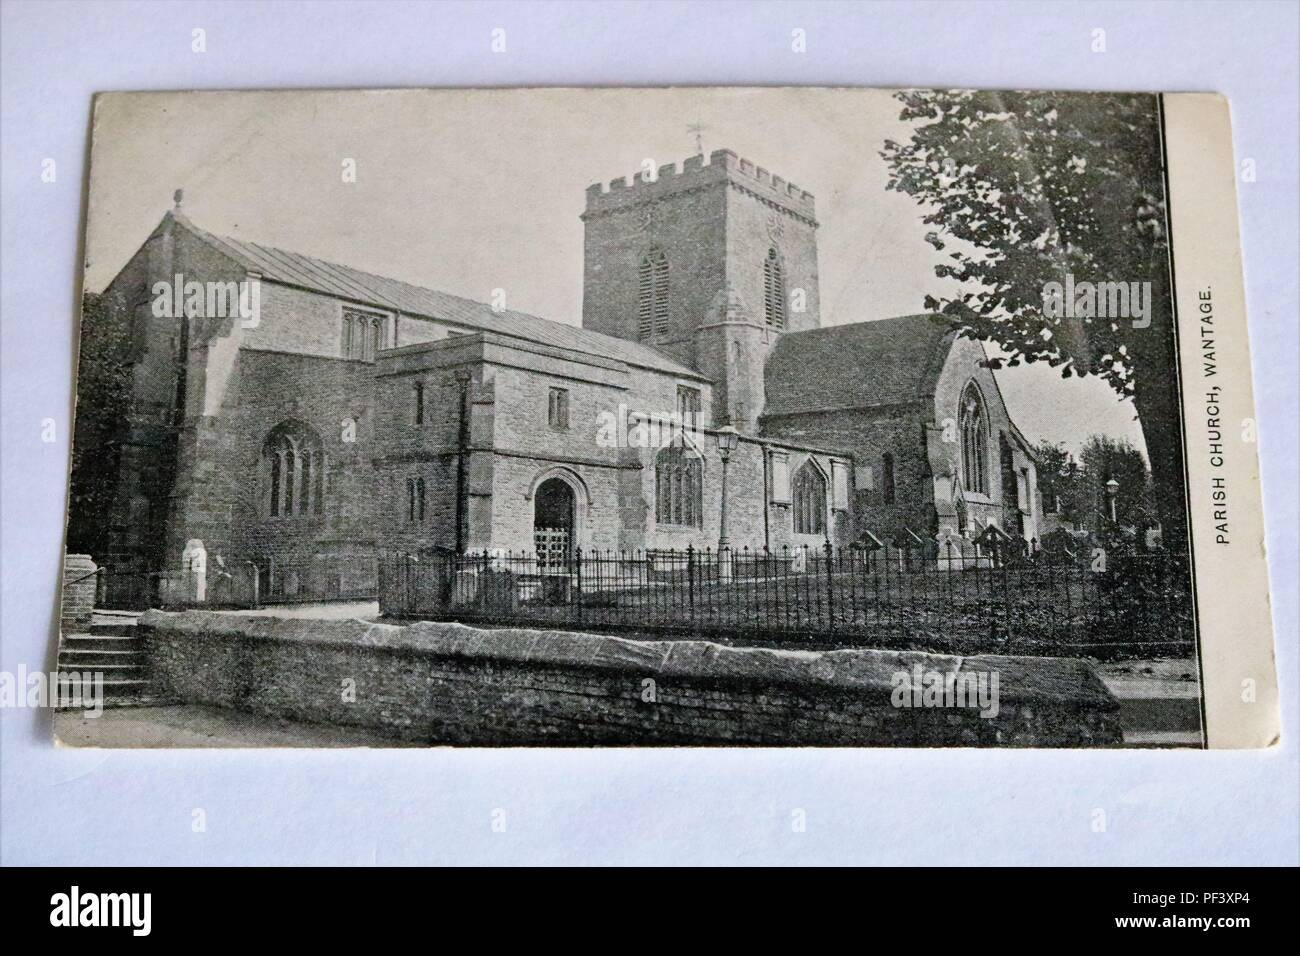 Old black and white postcard of the Parish Church, Wantage, UK - Stock Image